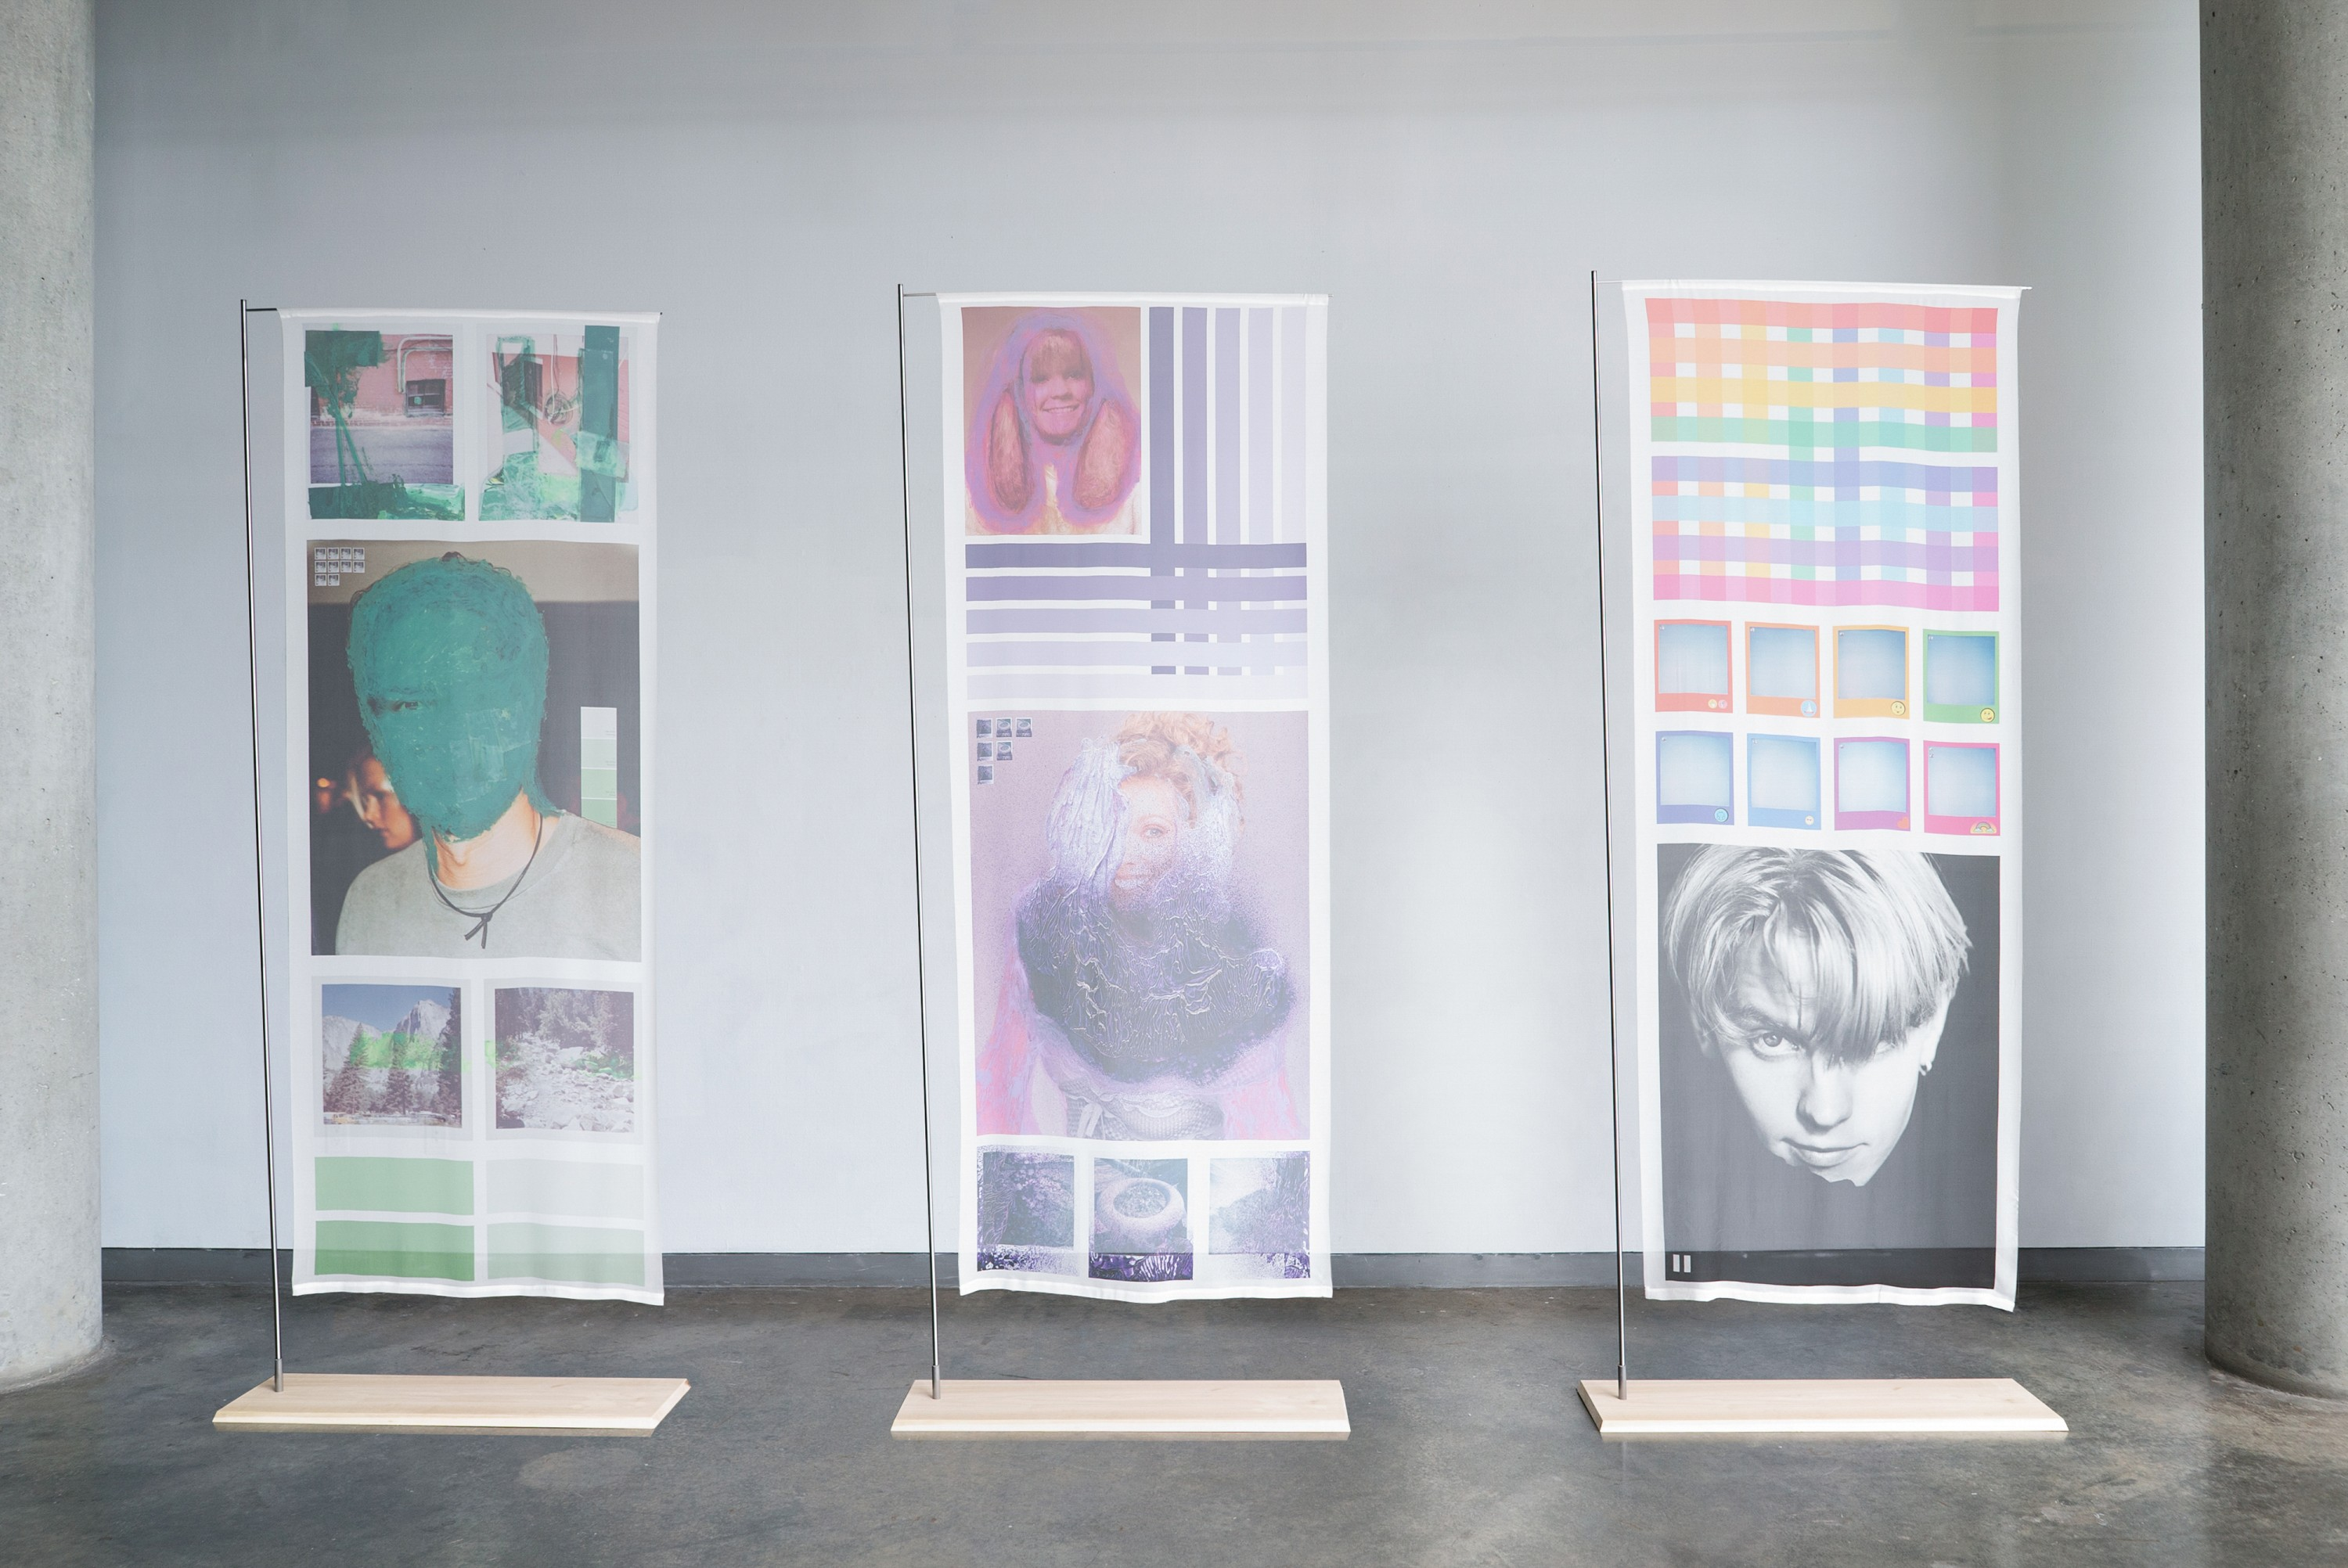 Three large silk scrolls containing colorful grid-styles layouts of collages on instant and found imagery.